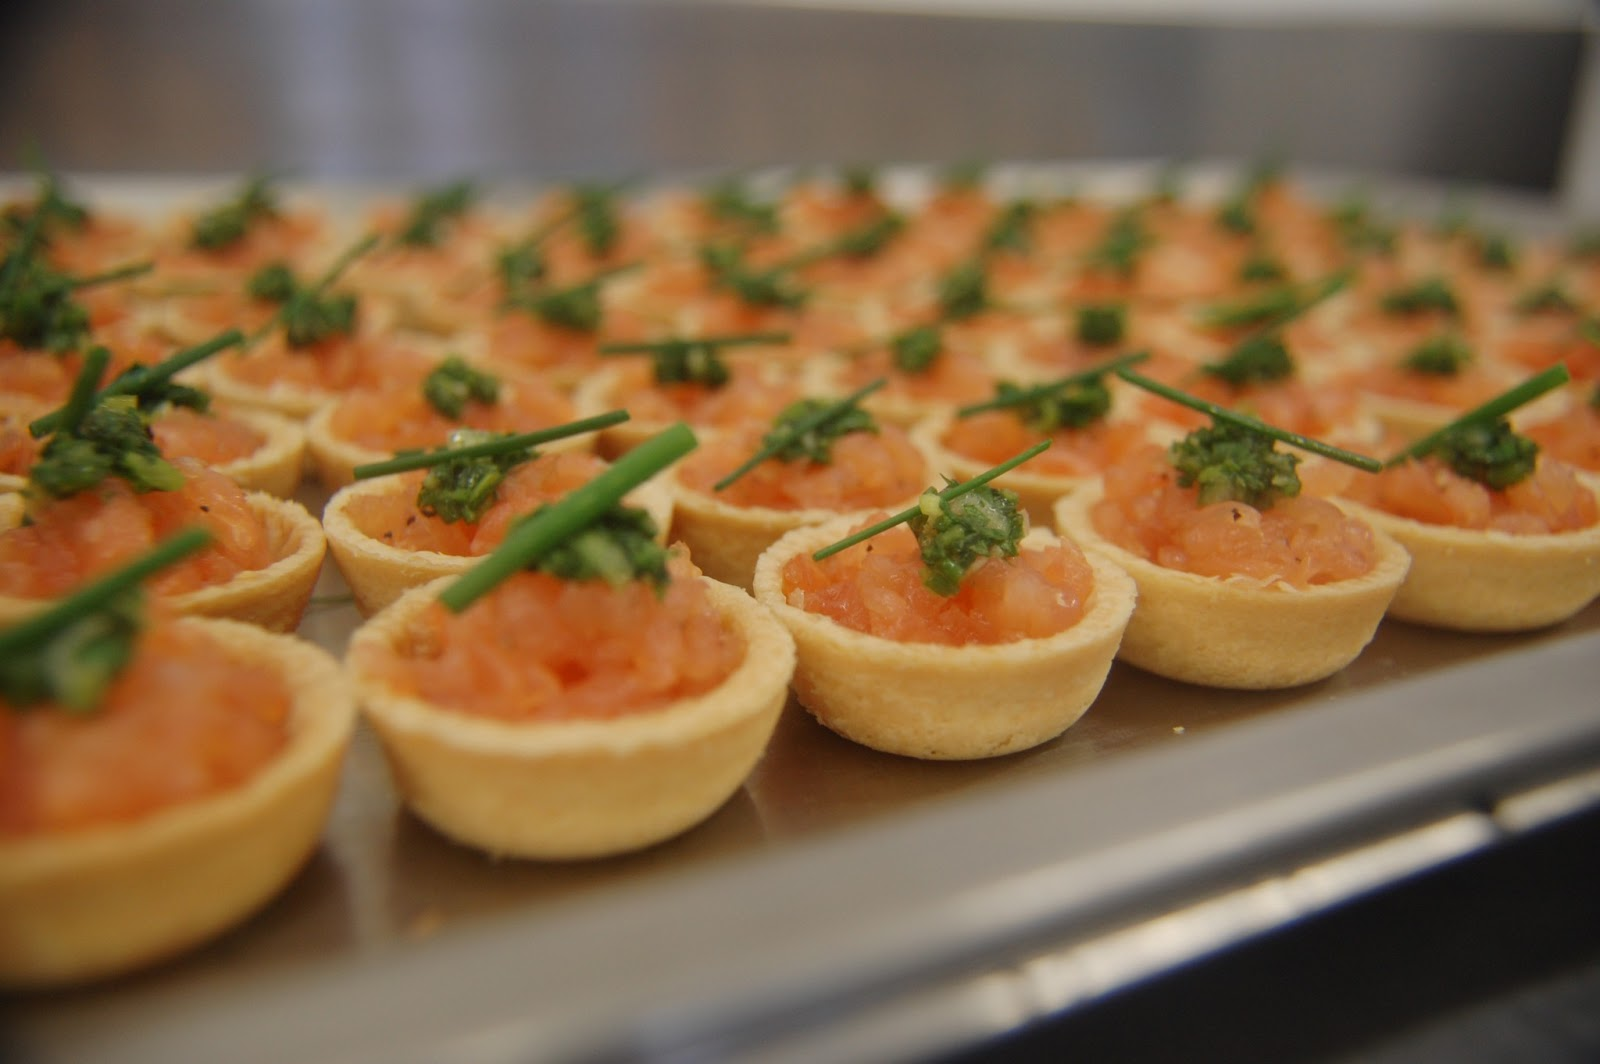 Weddings at powerscourt house canapes and starters for Canape suggestions